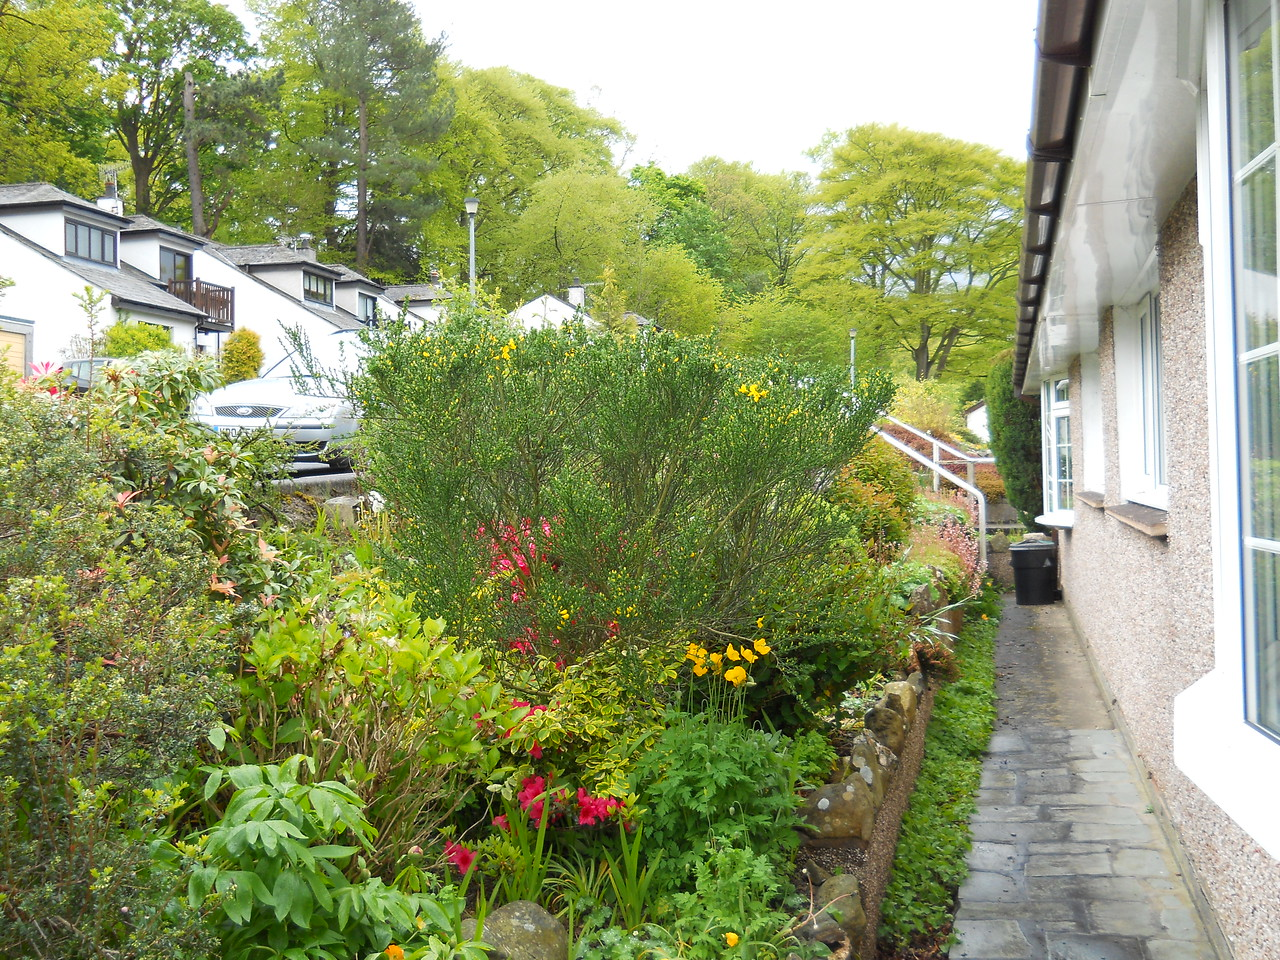 The front garden - the street is higher than the cottage